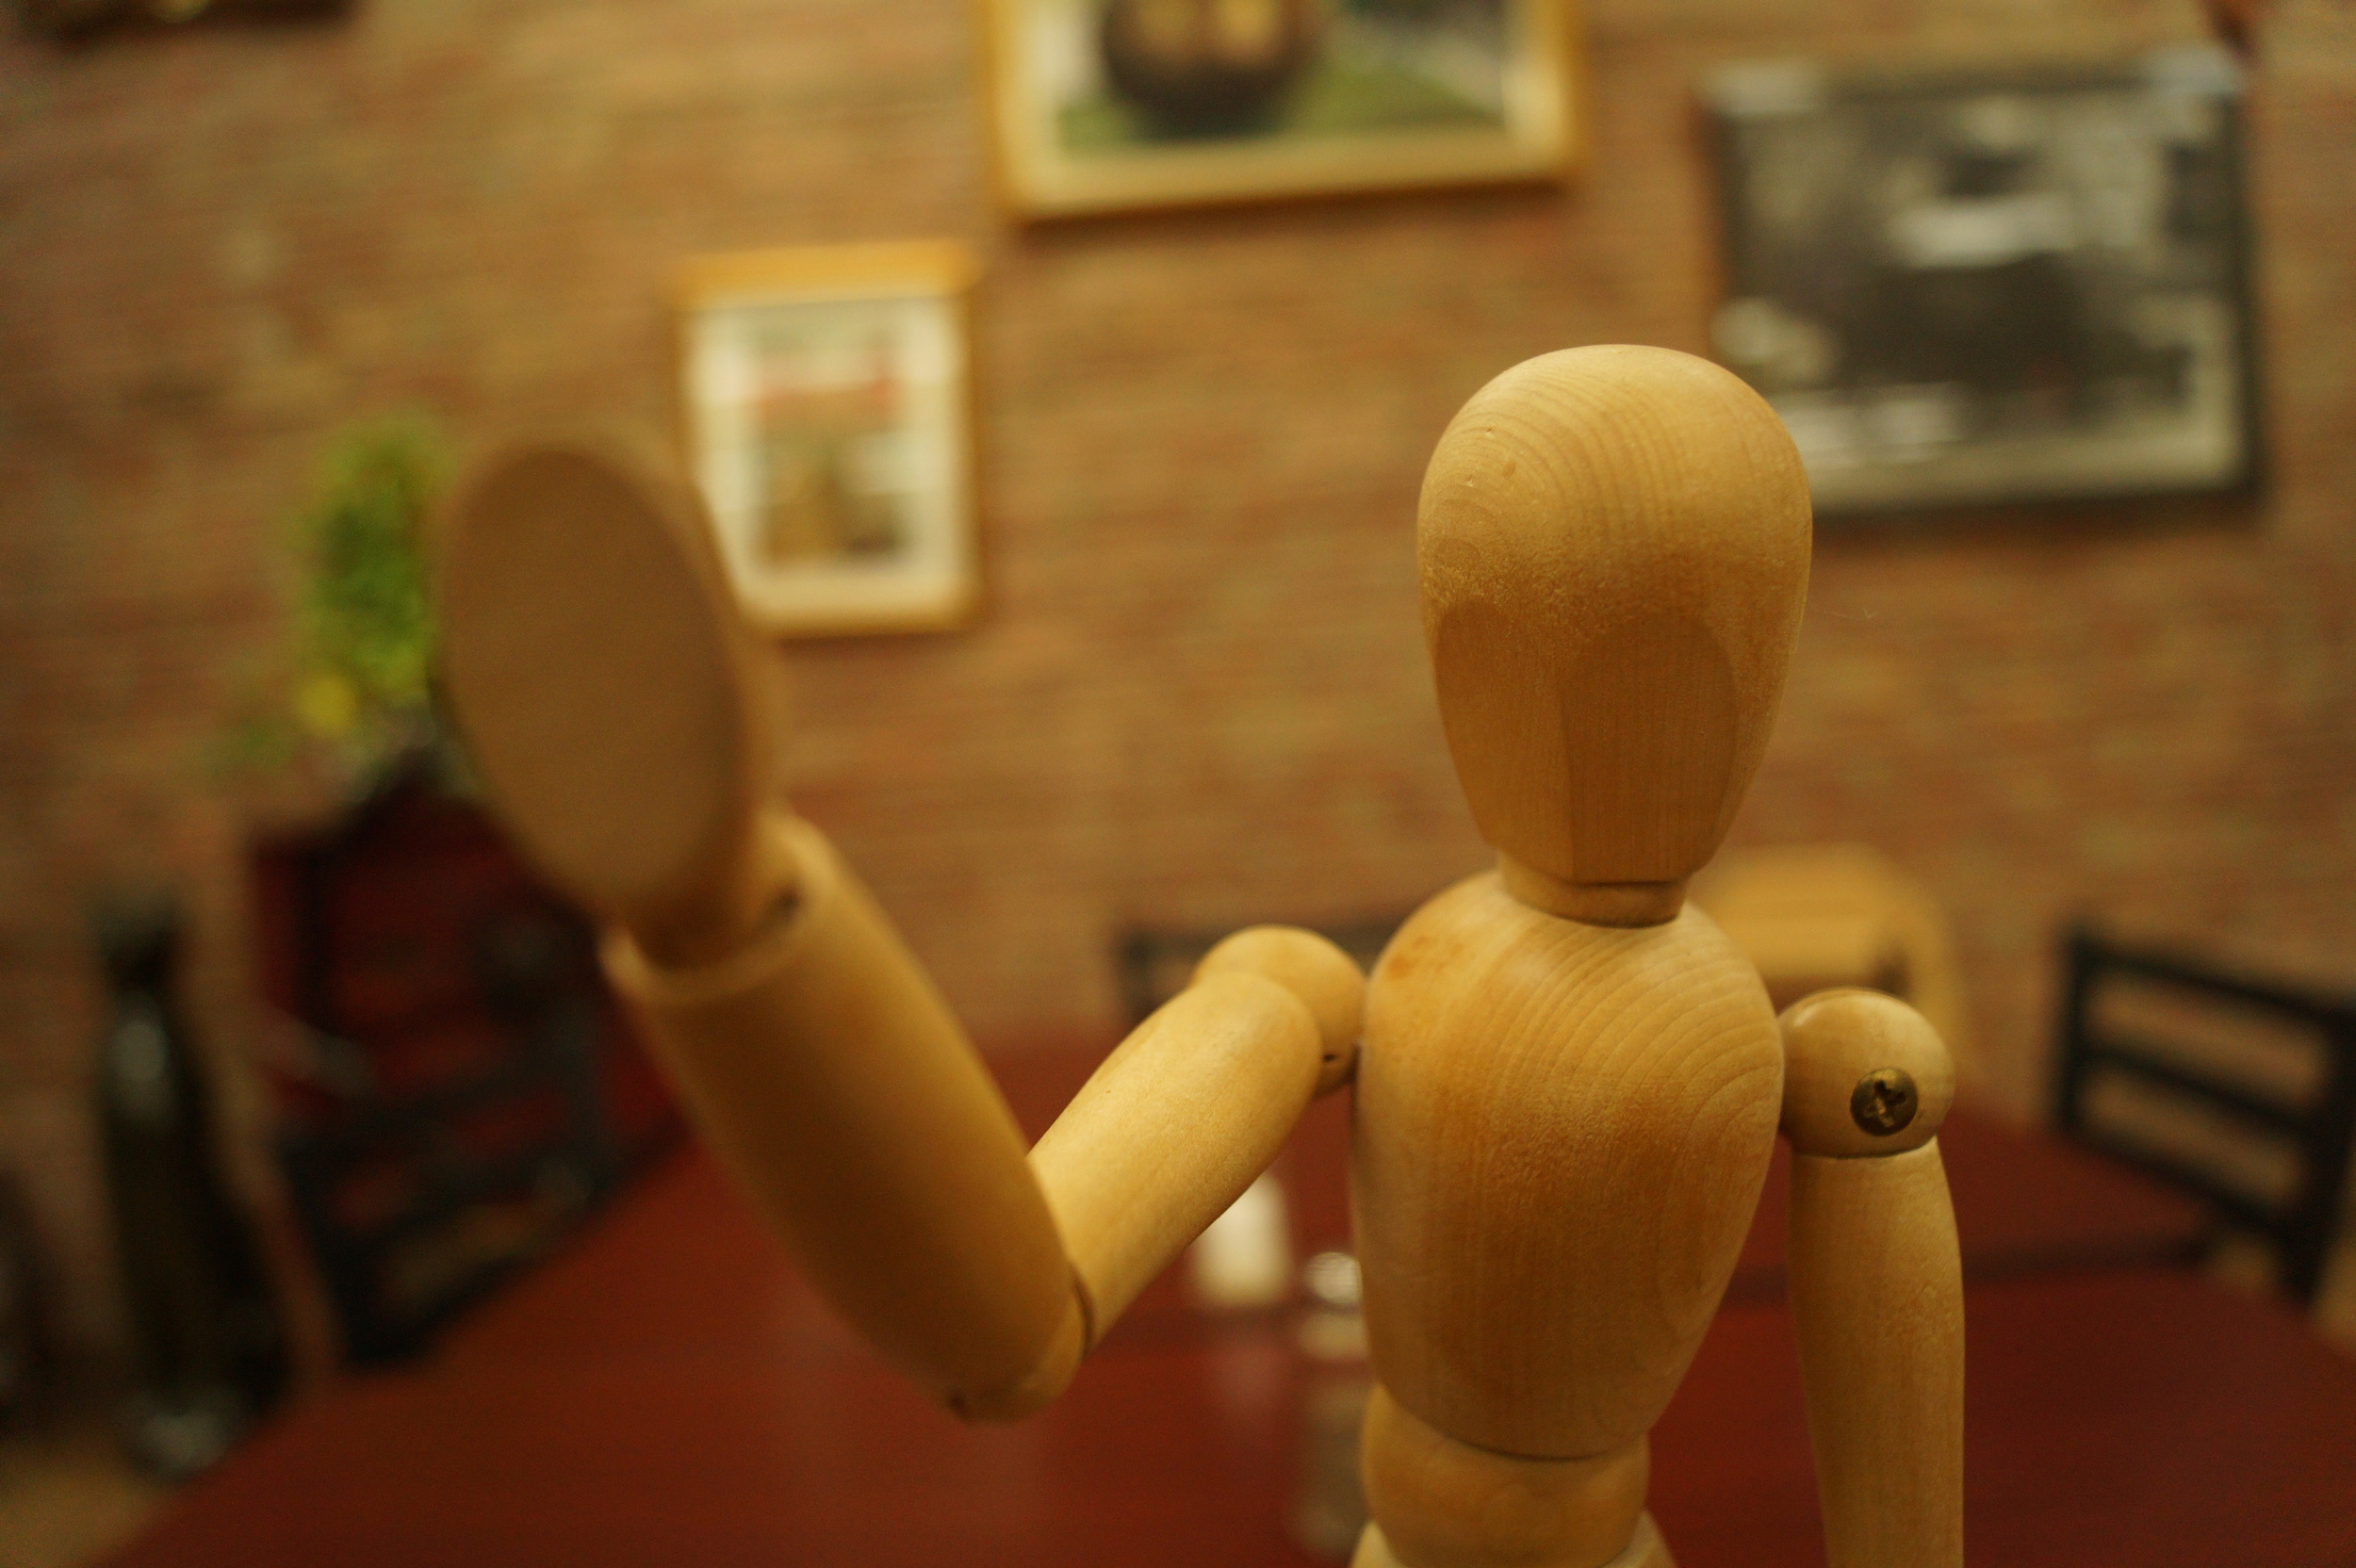 The wooden dummy (privicy)